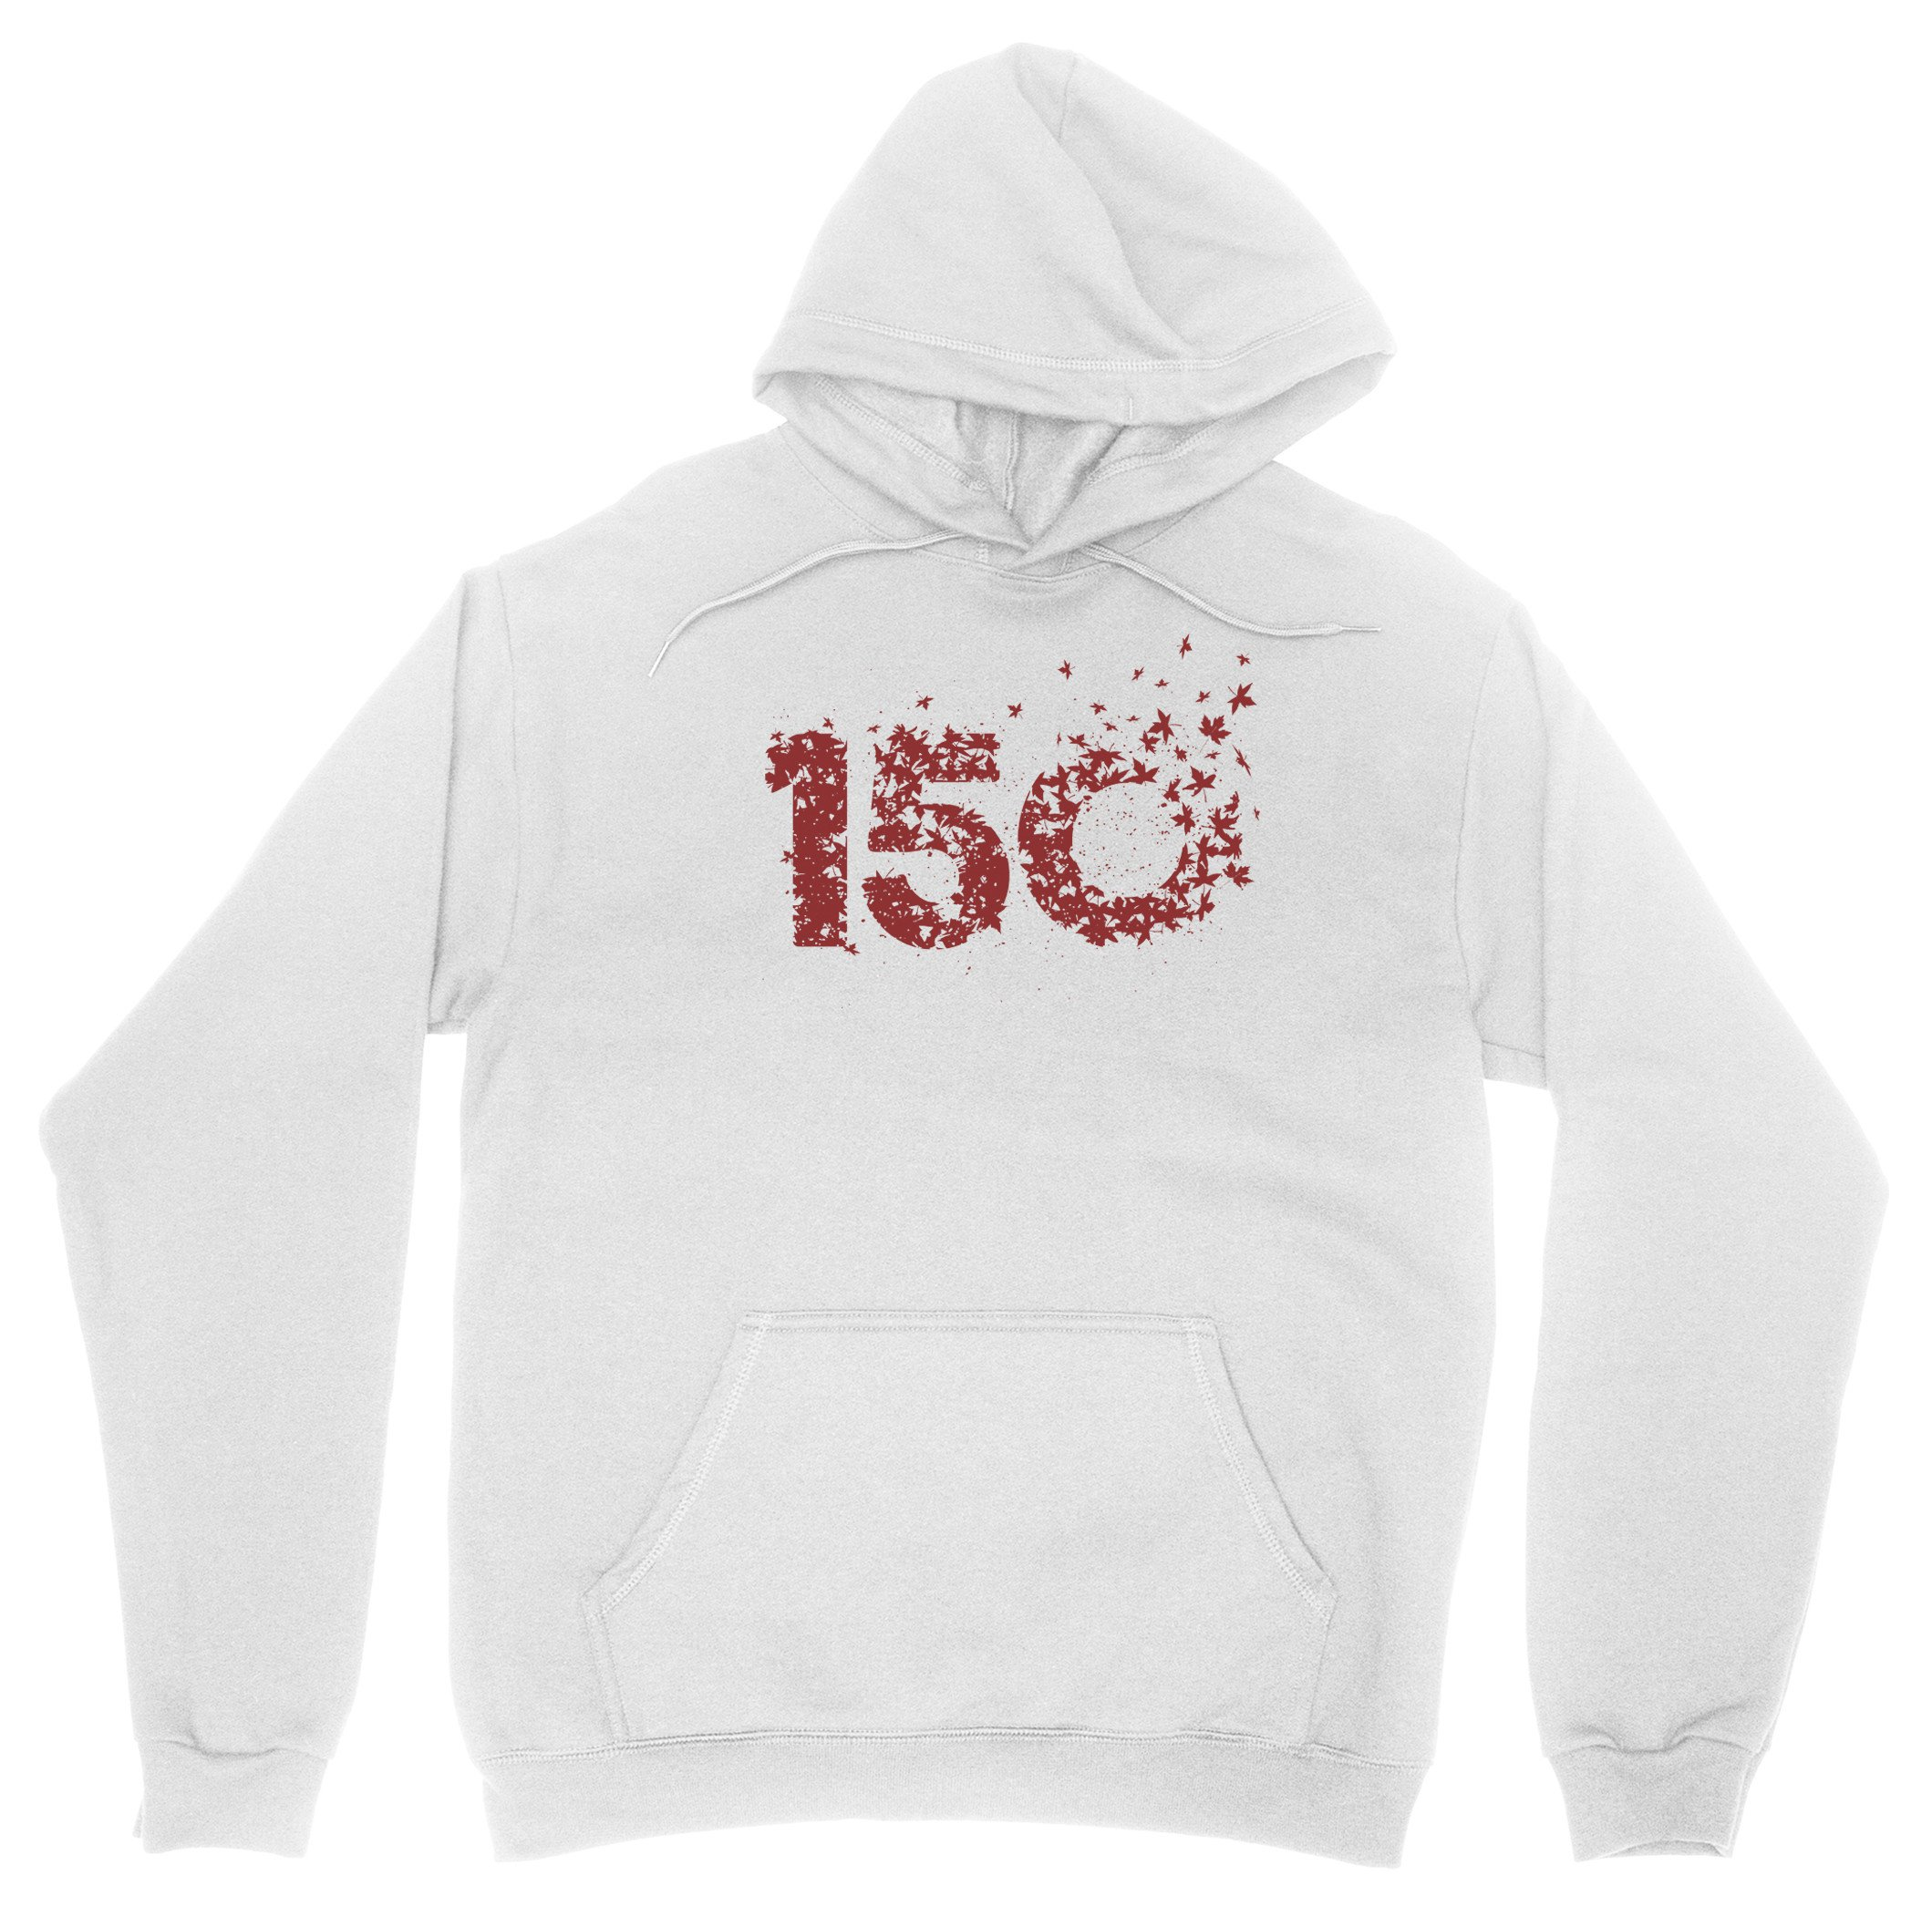 150 Blowing Leaves Hoodie